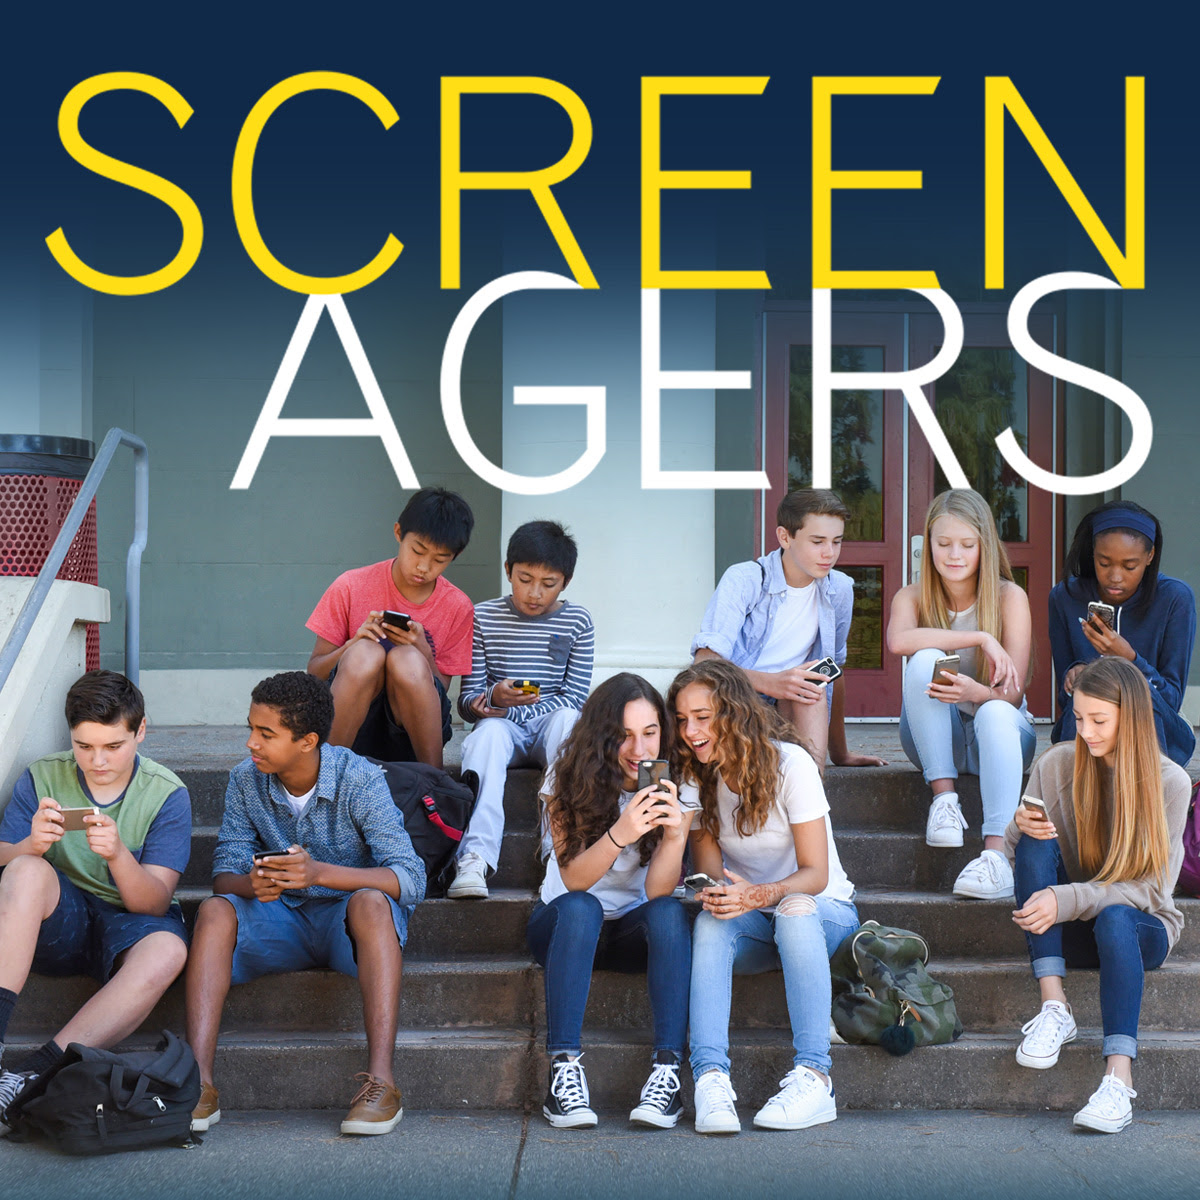 Screenagers Film Presented By Peconic Community School